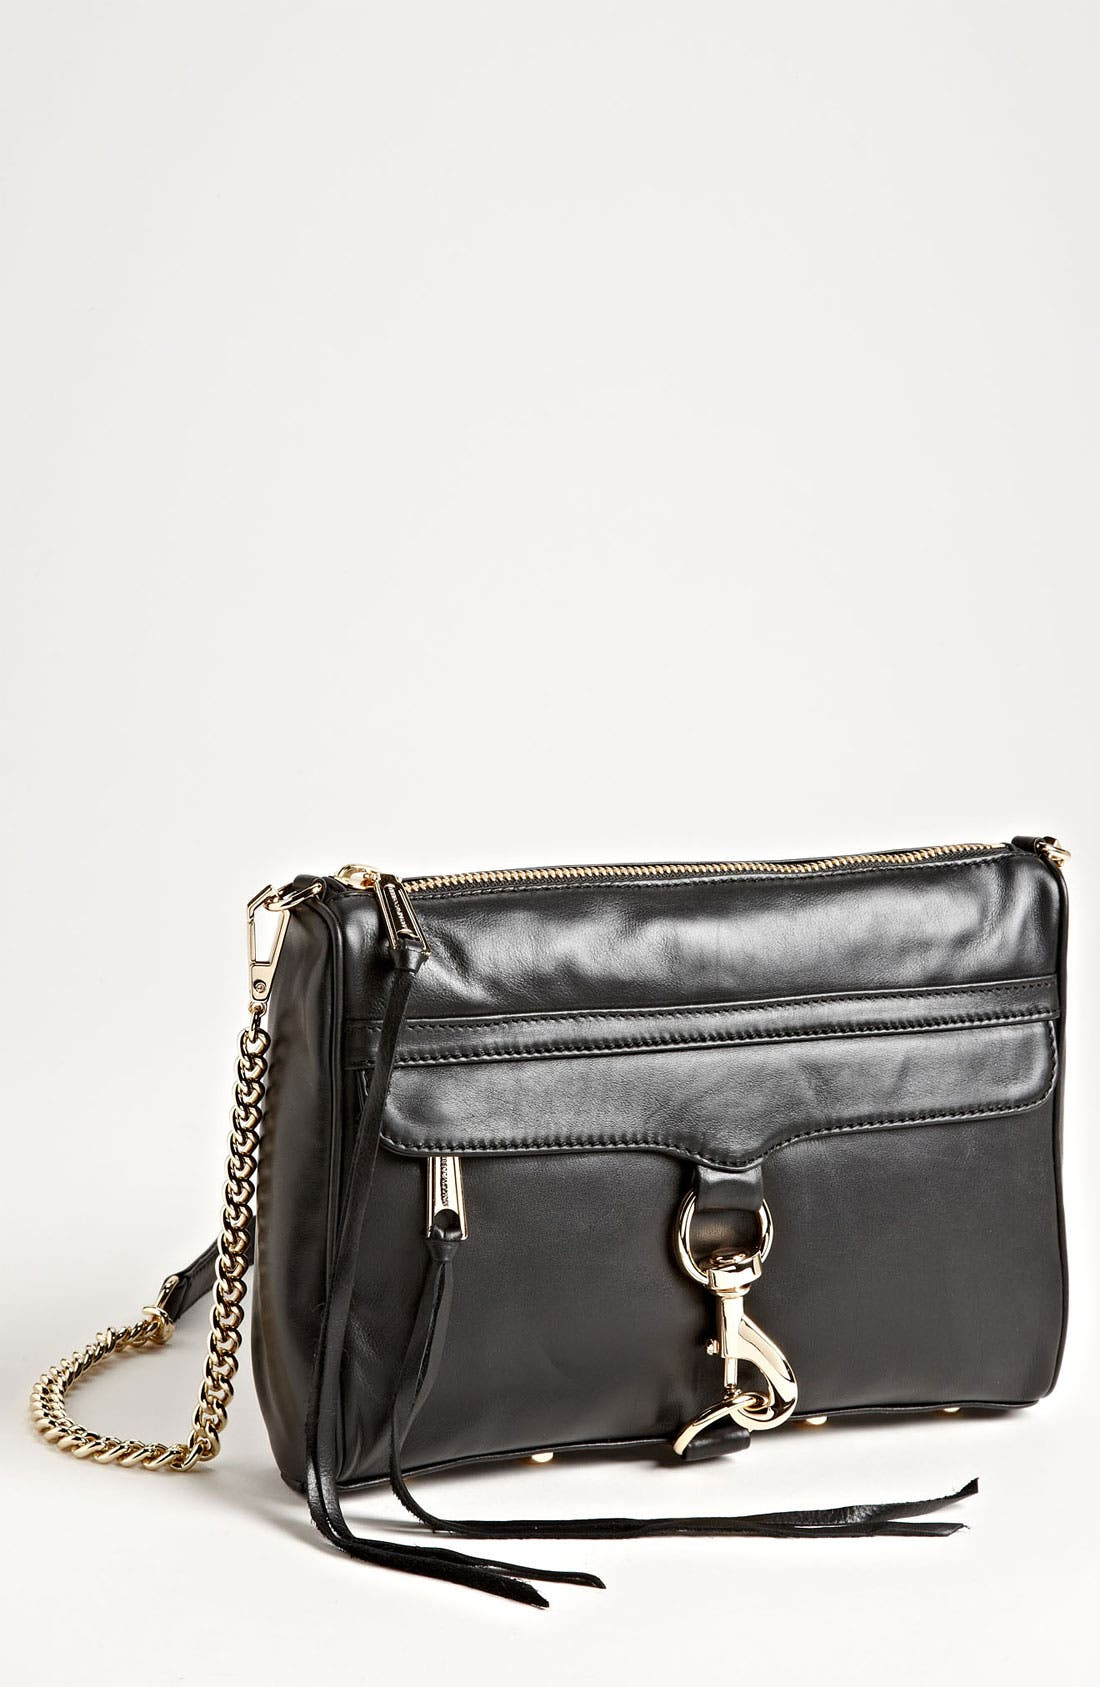 'MAC' Convertible Crossbody Bag,                             Main thumbnail 1, color,                             001